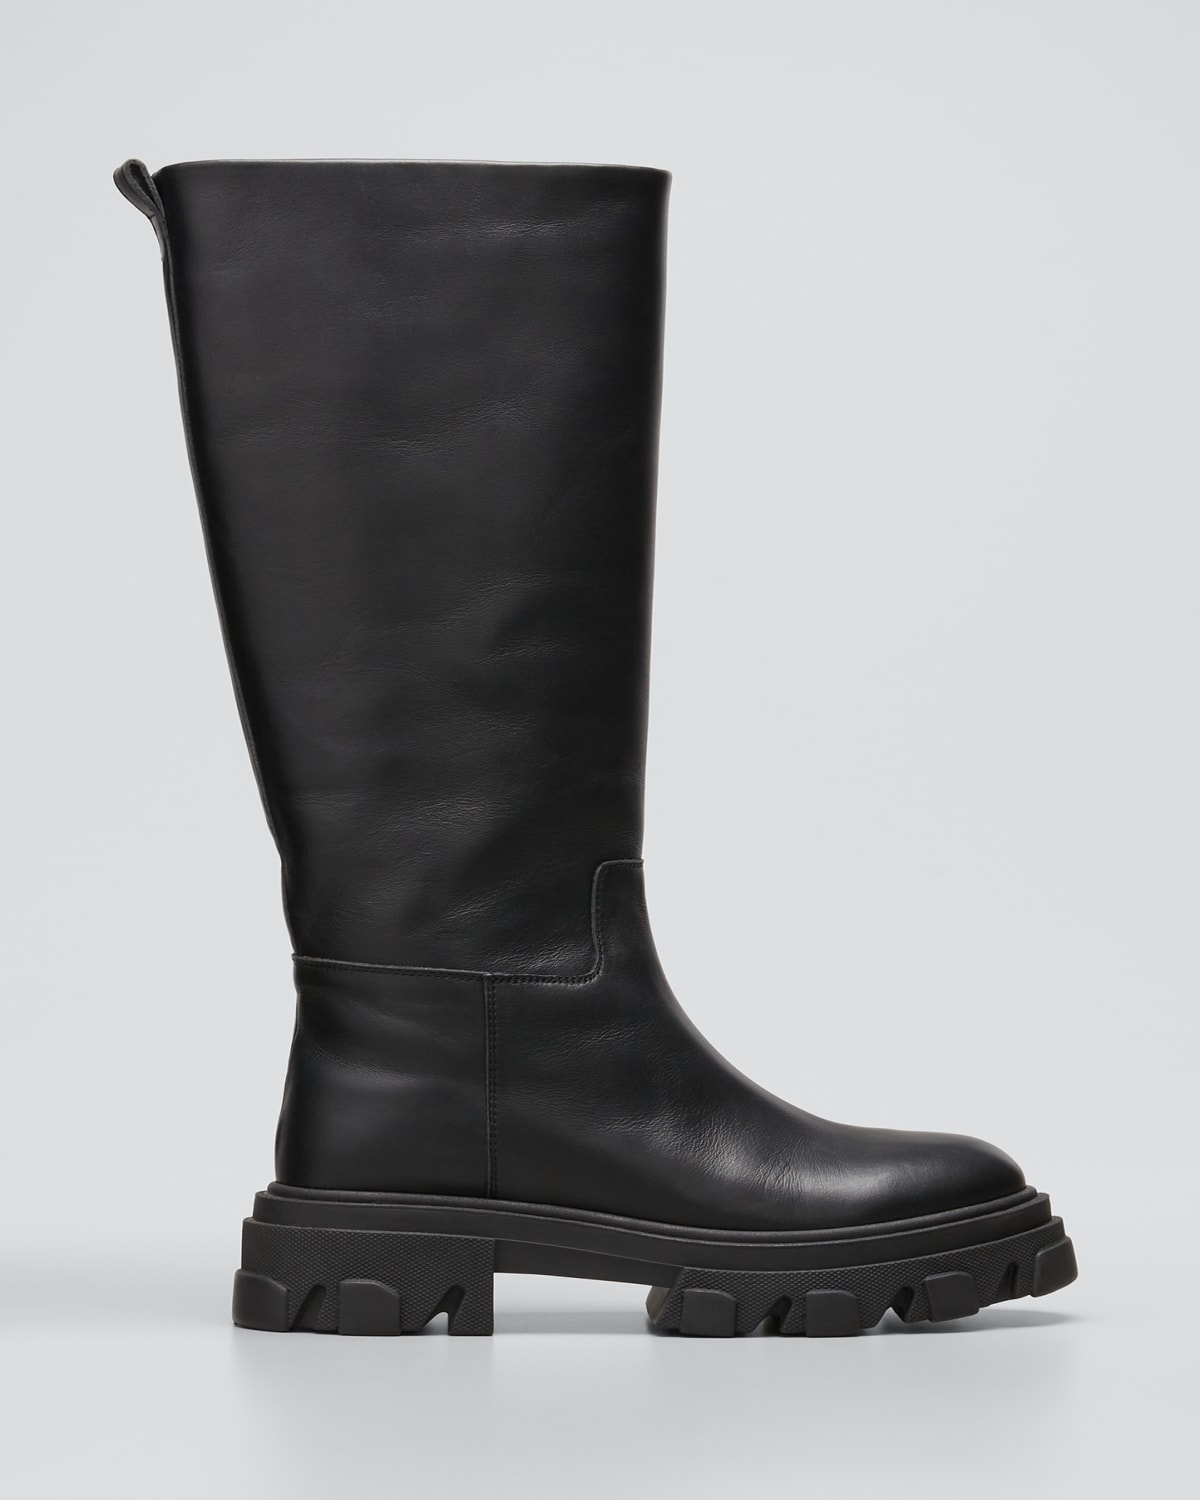 Tubular Leather Tall Combat Boots